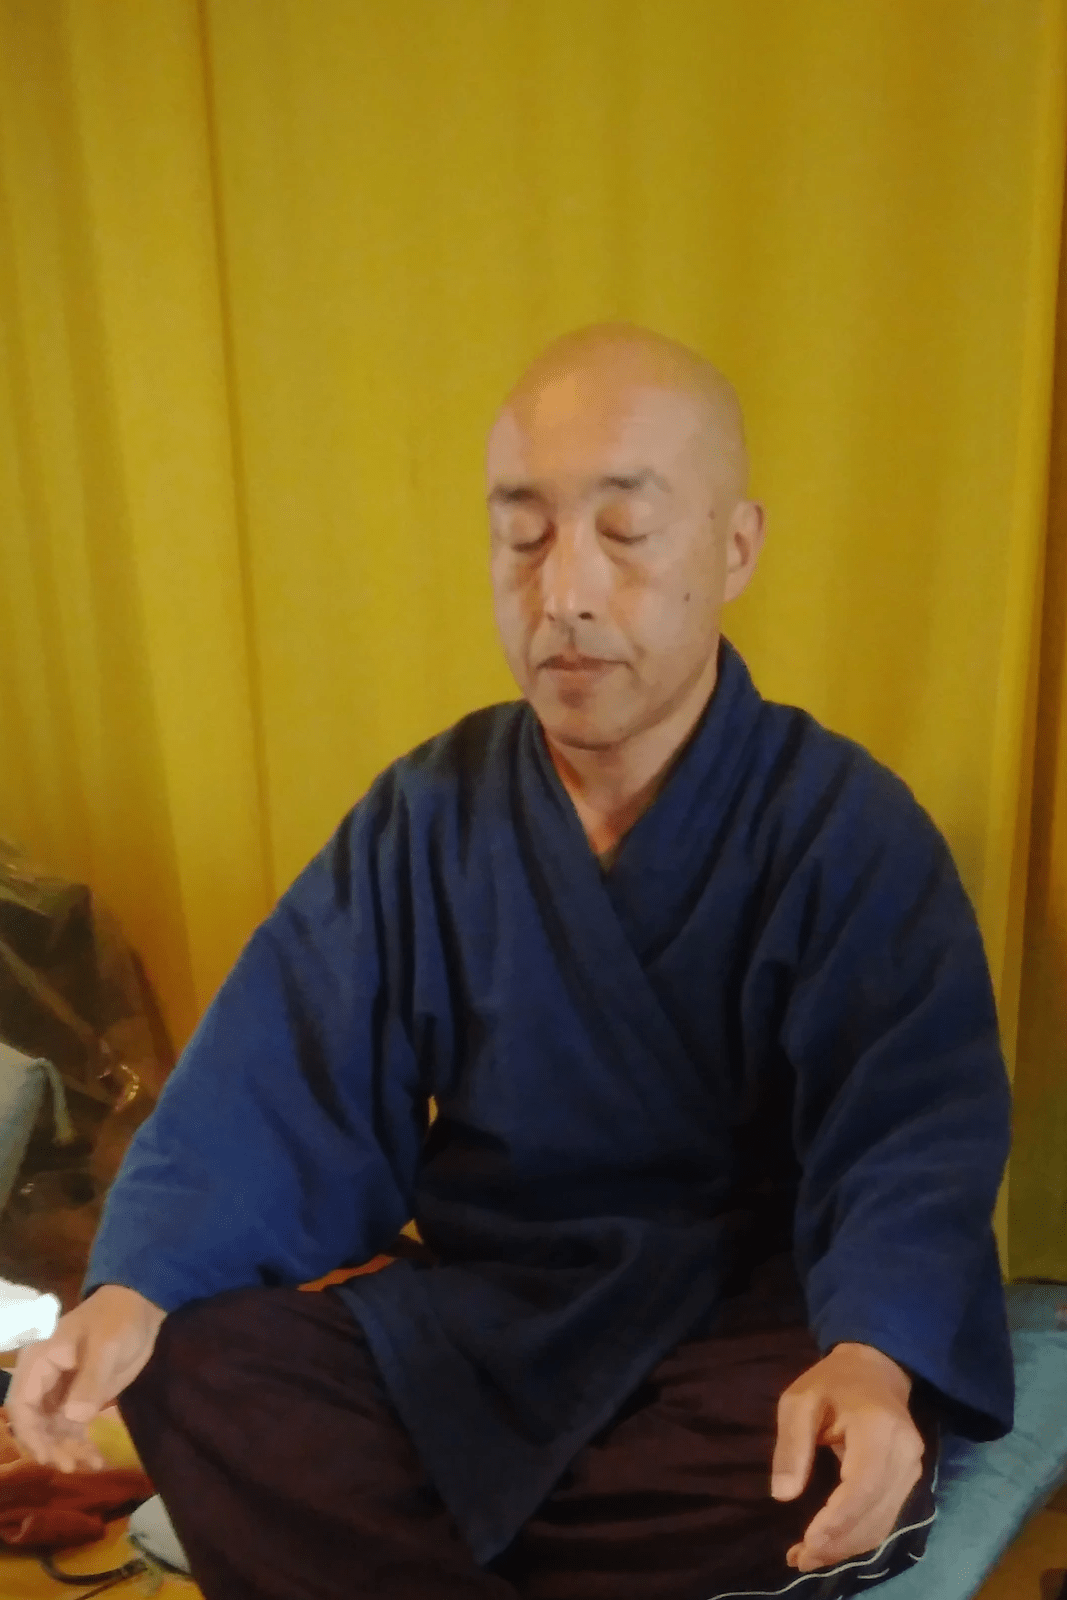 japanese buddhist monk meditating online cultural activity